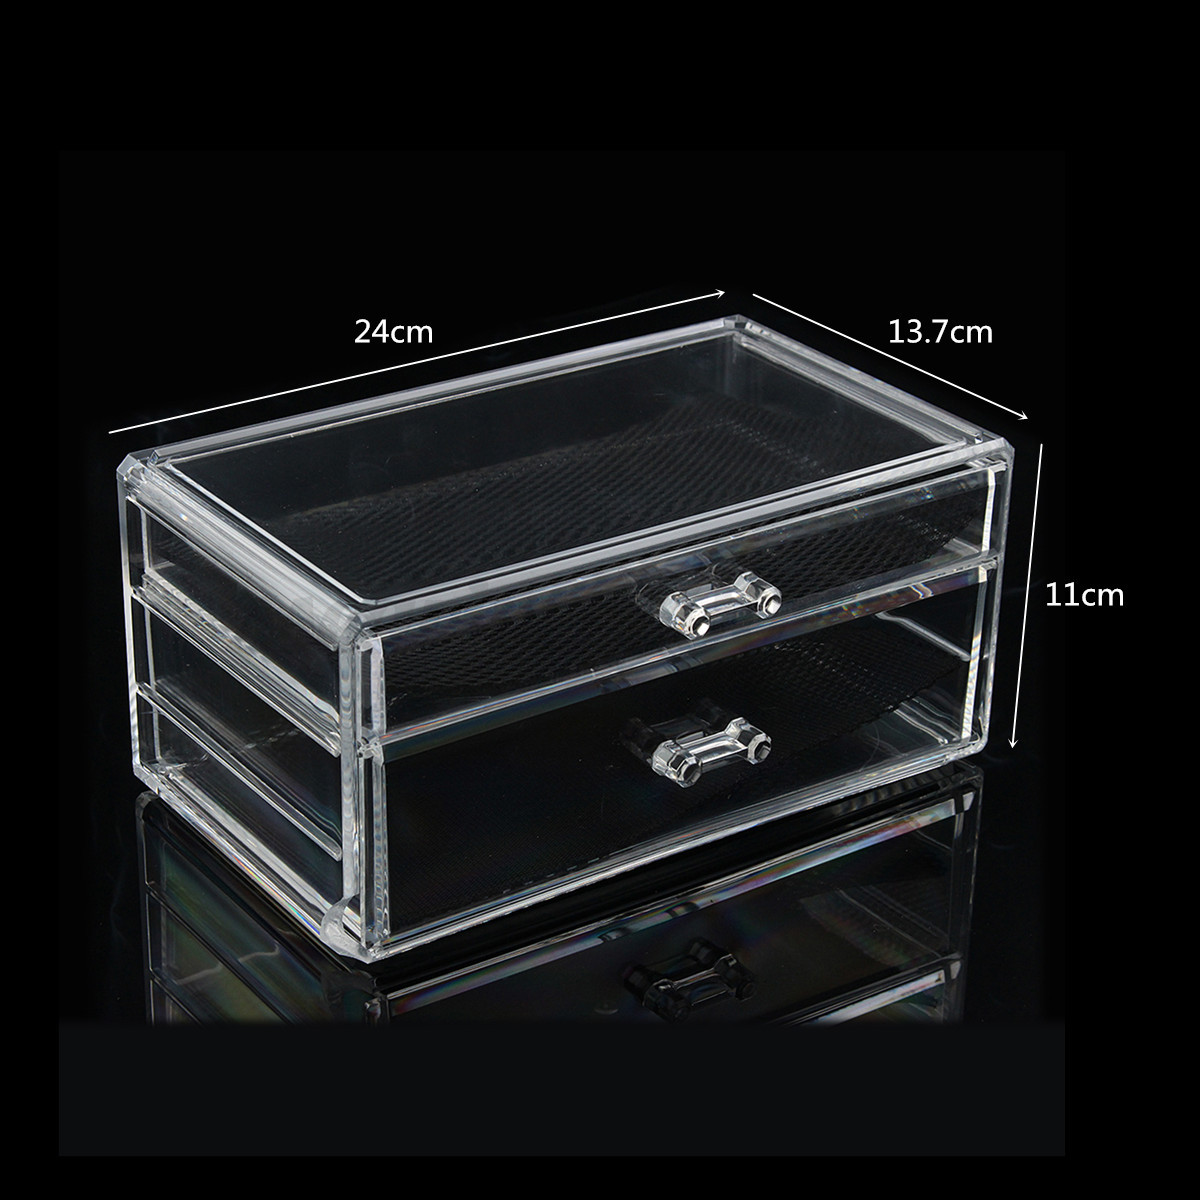 Acrylic Jewelry Boxes : Cosmetic case clear acrylic makeup organizer jewelry